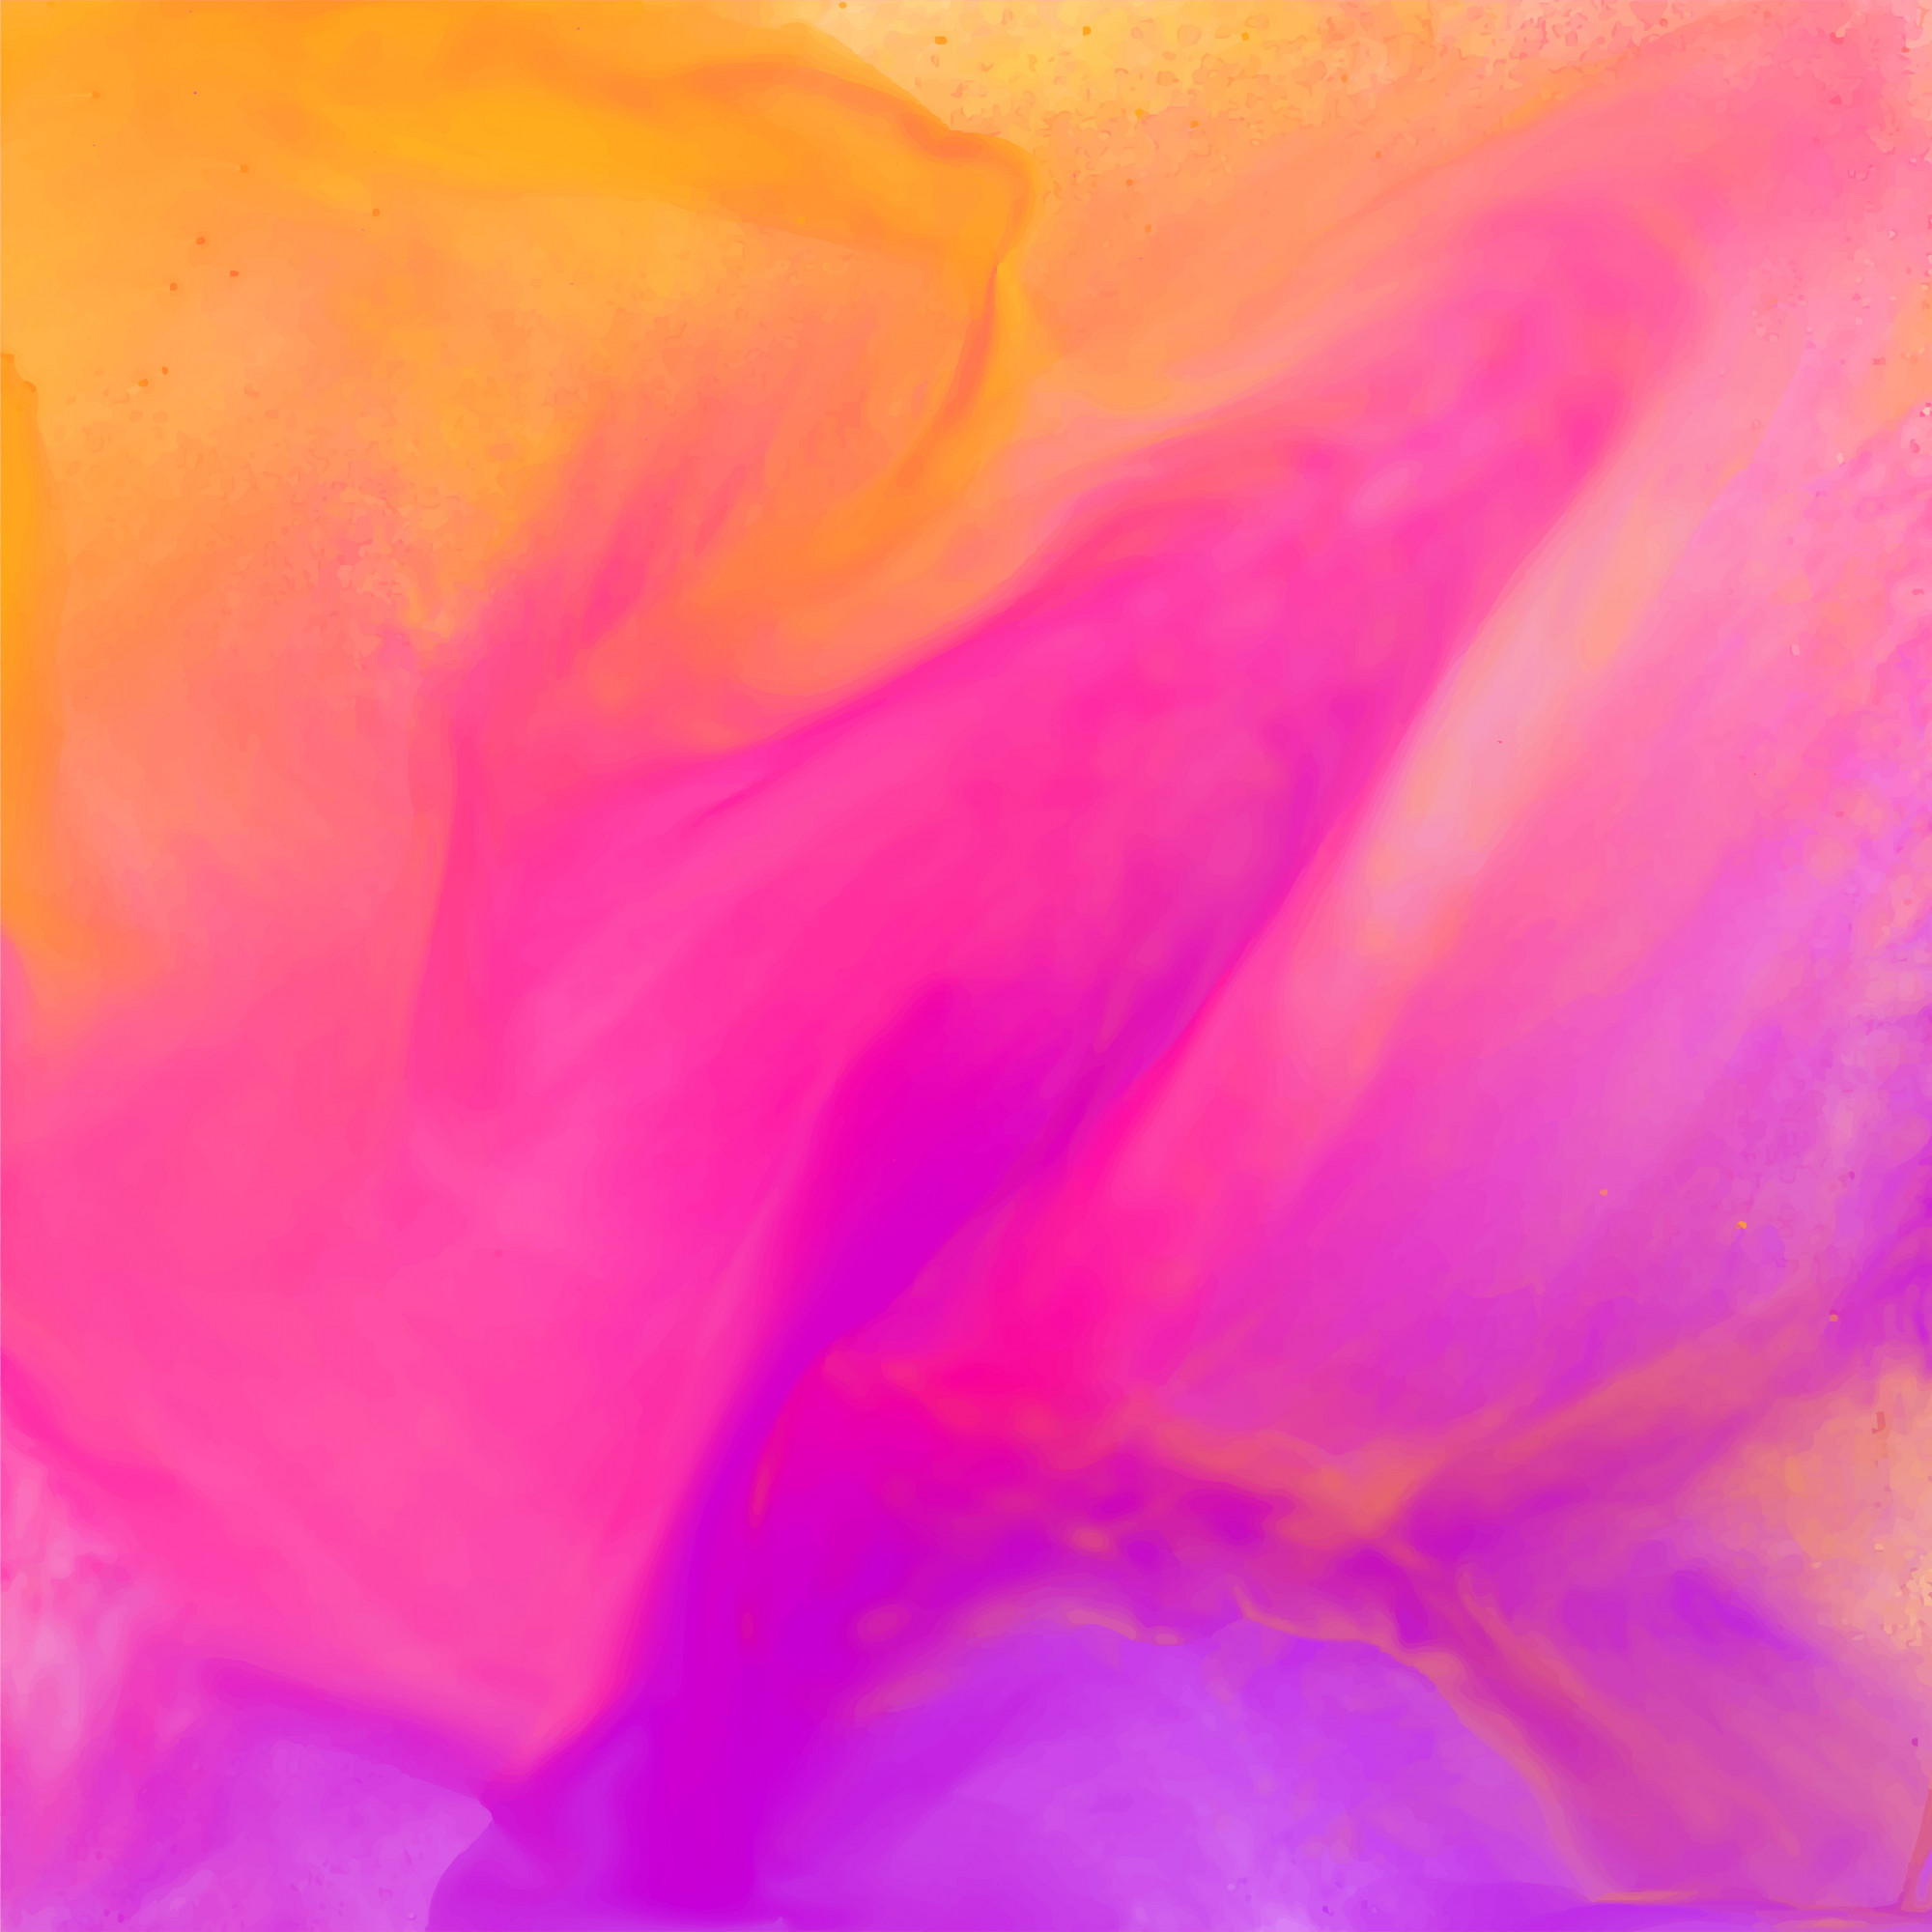 Bright colorful abstract pink watercolor texture background